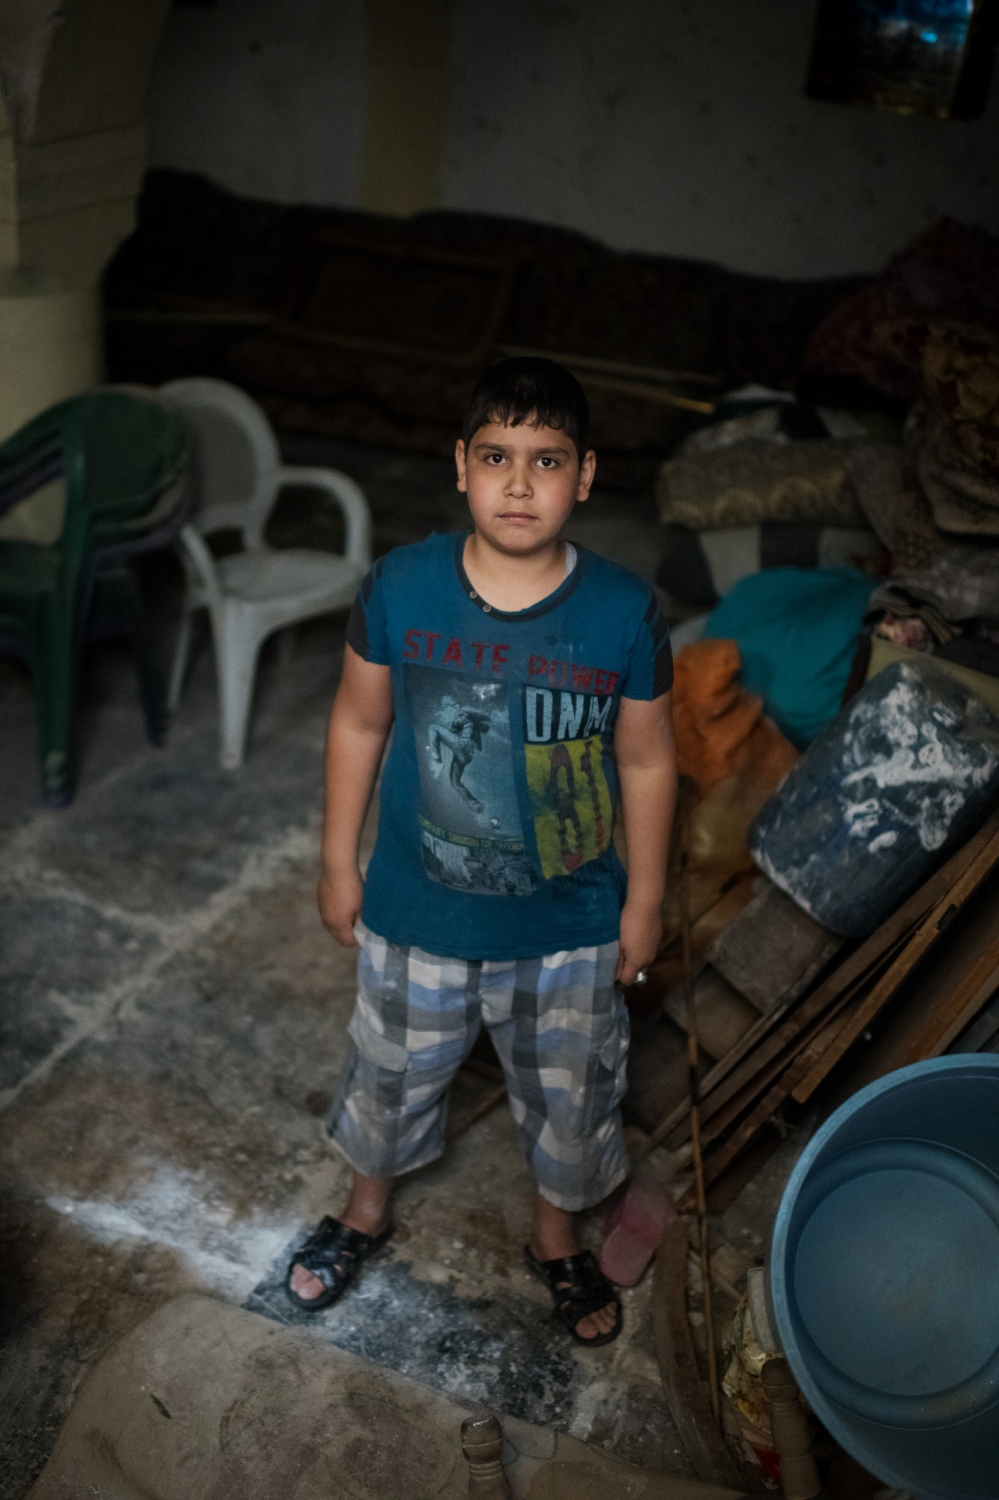 MOSUL 20180413 Jafar Helwan is 11. He is from old Mosul, the western part of Mosul. He lived here with five siblings, mother and father. His father is a day worker. Their house was partly destroyed by coalition airstrikes about a year ago. That was when Jafar got shrapnel in his shoulder and knee. He can still feel it in his shoulder. He has not been able to go to school for three years and works as a baker apprentice with his uncle. When we meet him he is visiting his uncle. What is your favourite thing? My bicycle. What do you like to do? I like to bake. What do you hate the most? I hate all the destruction. What do you want to be when you grow up? I want to become a baker. What is your dream? I would like to have my own home. Photo: Vilhelm Stokstad / Kontinent